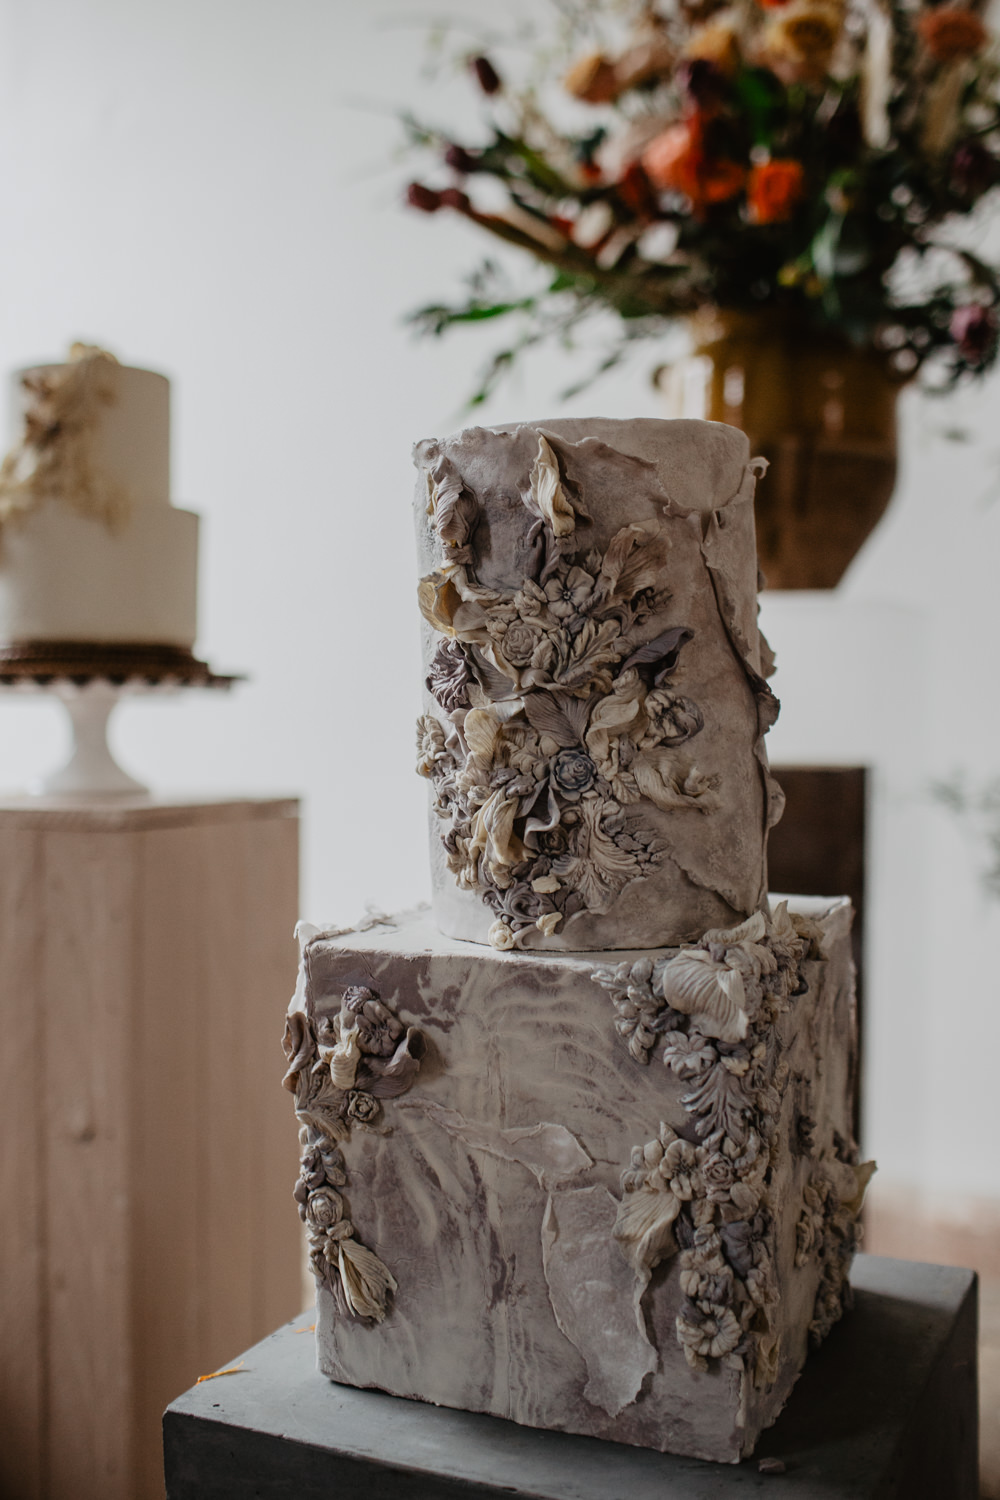 Cake Cakes Pottery Fabric Earthy Grey Elopement Wedding Ideas Oilvejoy Photography